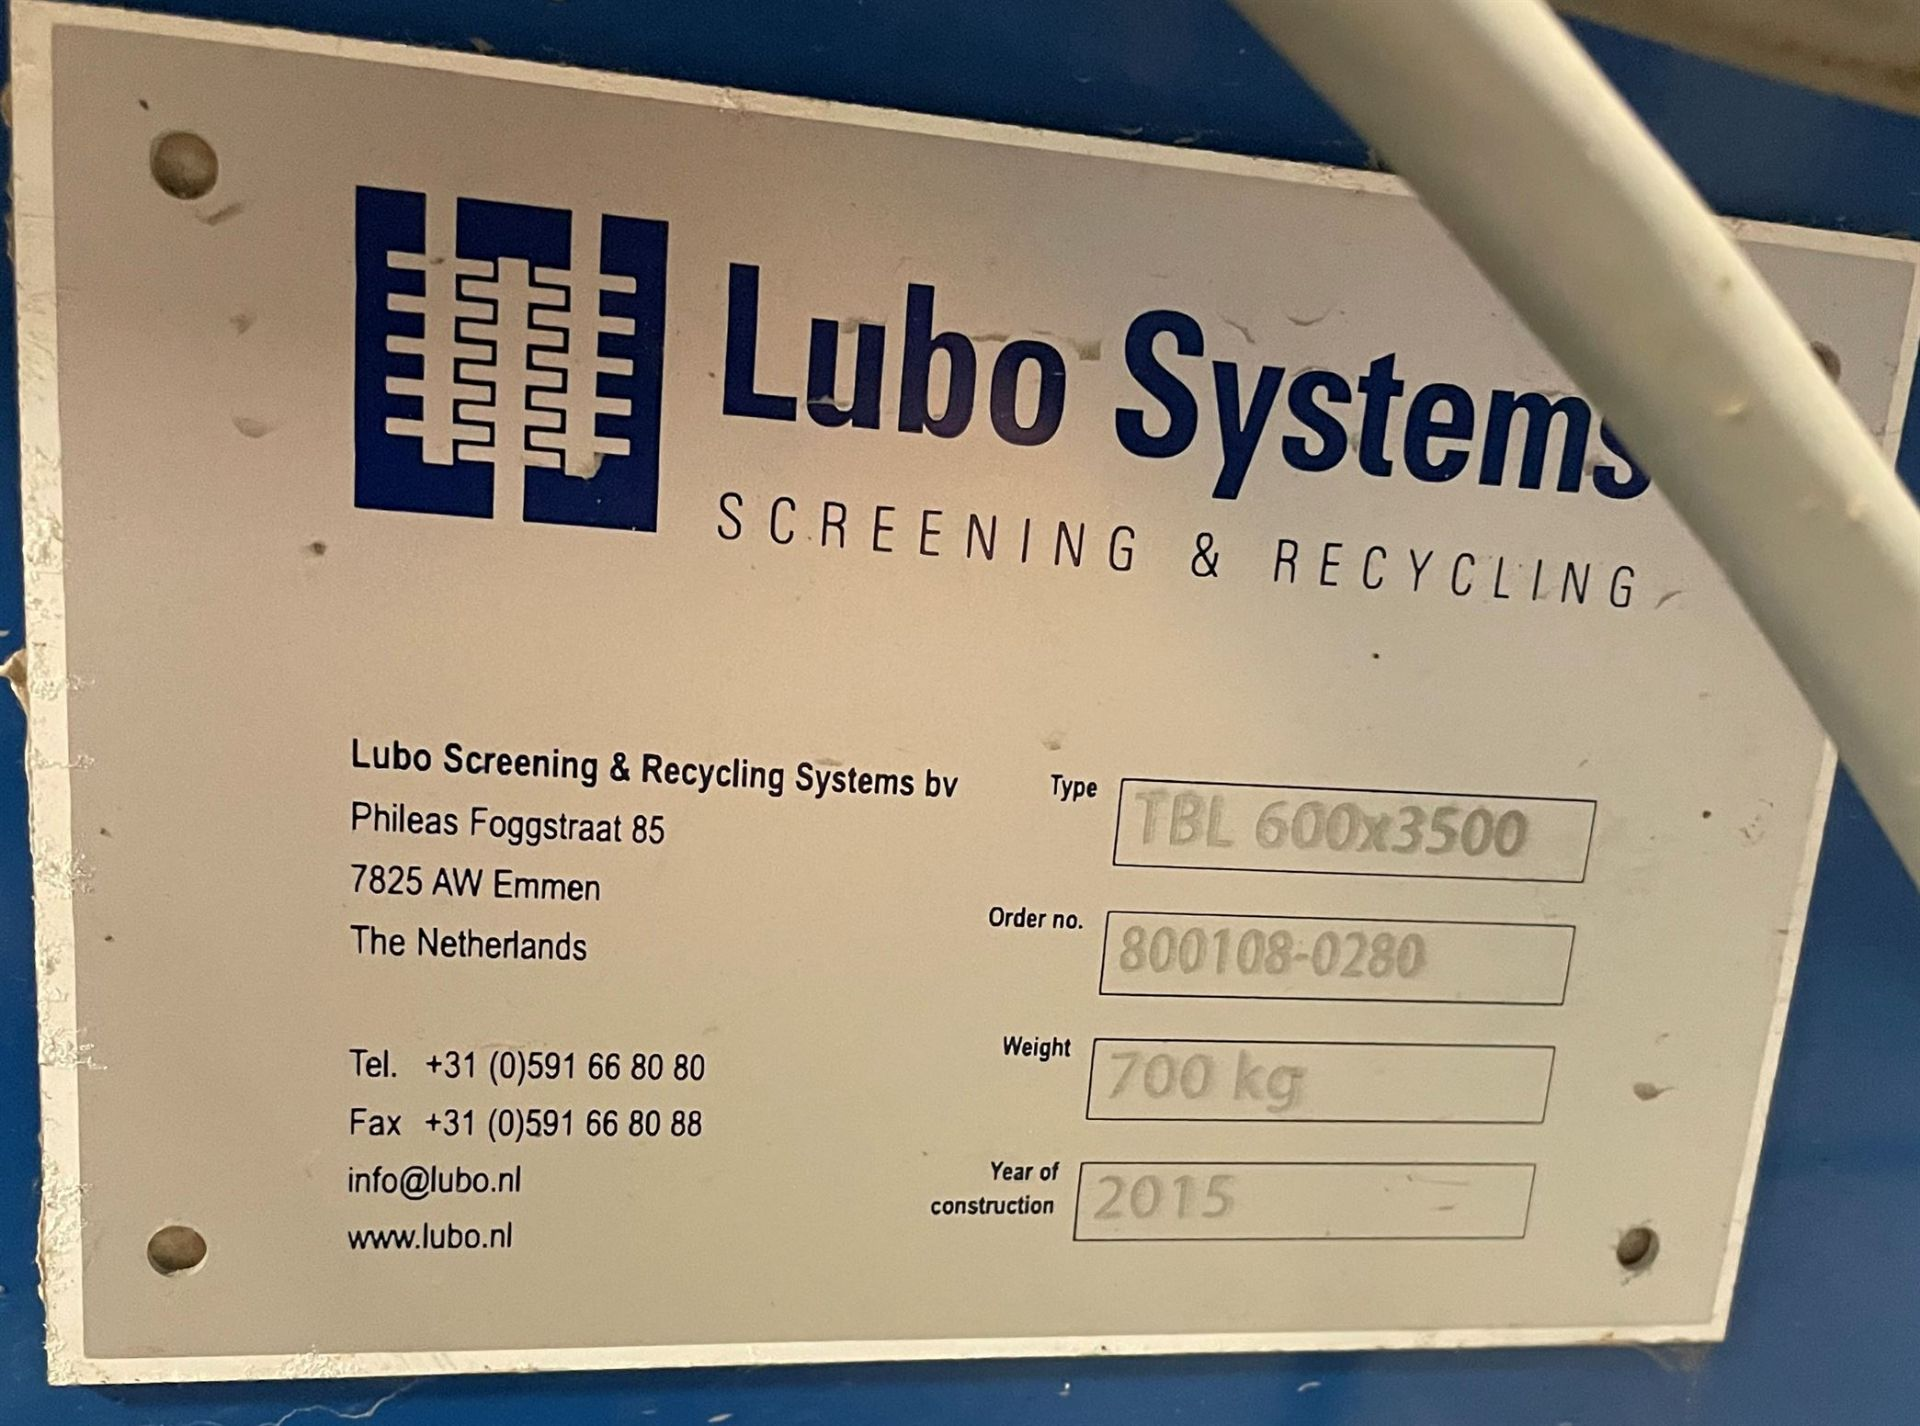 2015 LUBO SYSTEMS TBL 600x3500 Inclined Belt Conveyor, s/n 800108-0280, 600mm x 3500mm, SEW 3.7 kW - Image 5 of 5